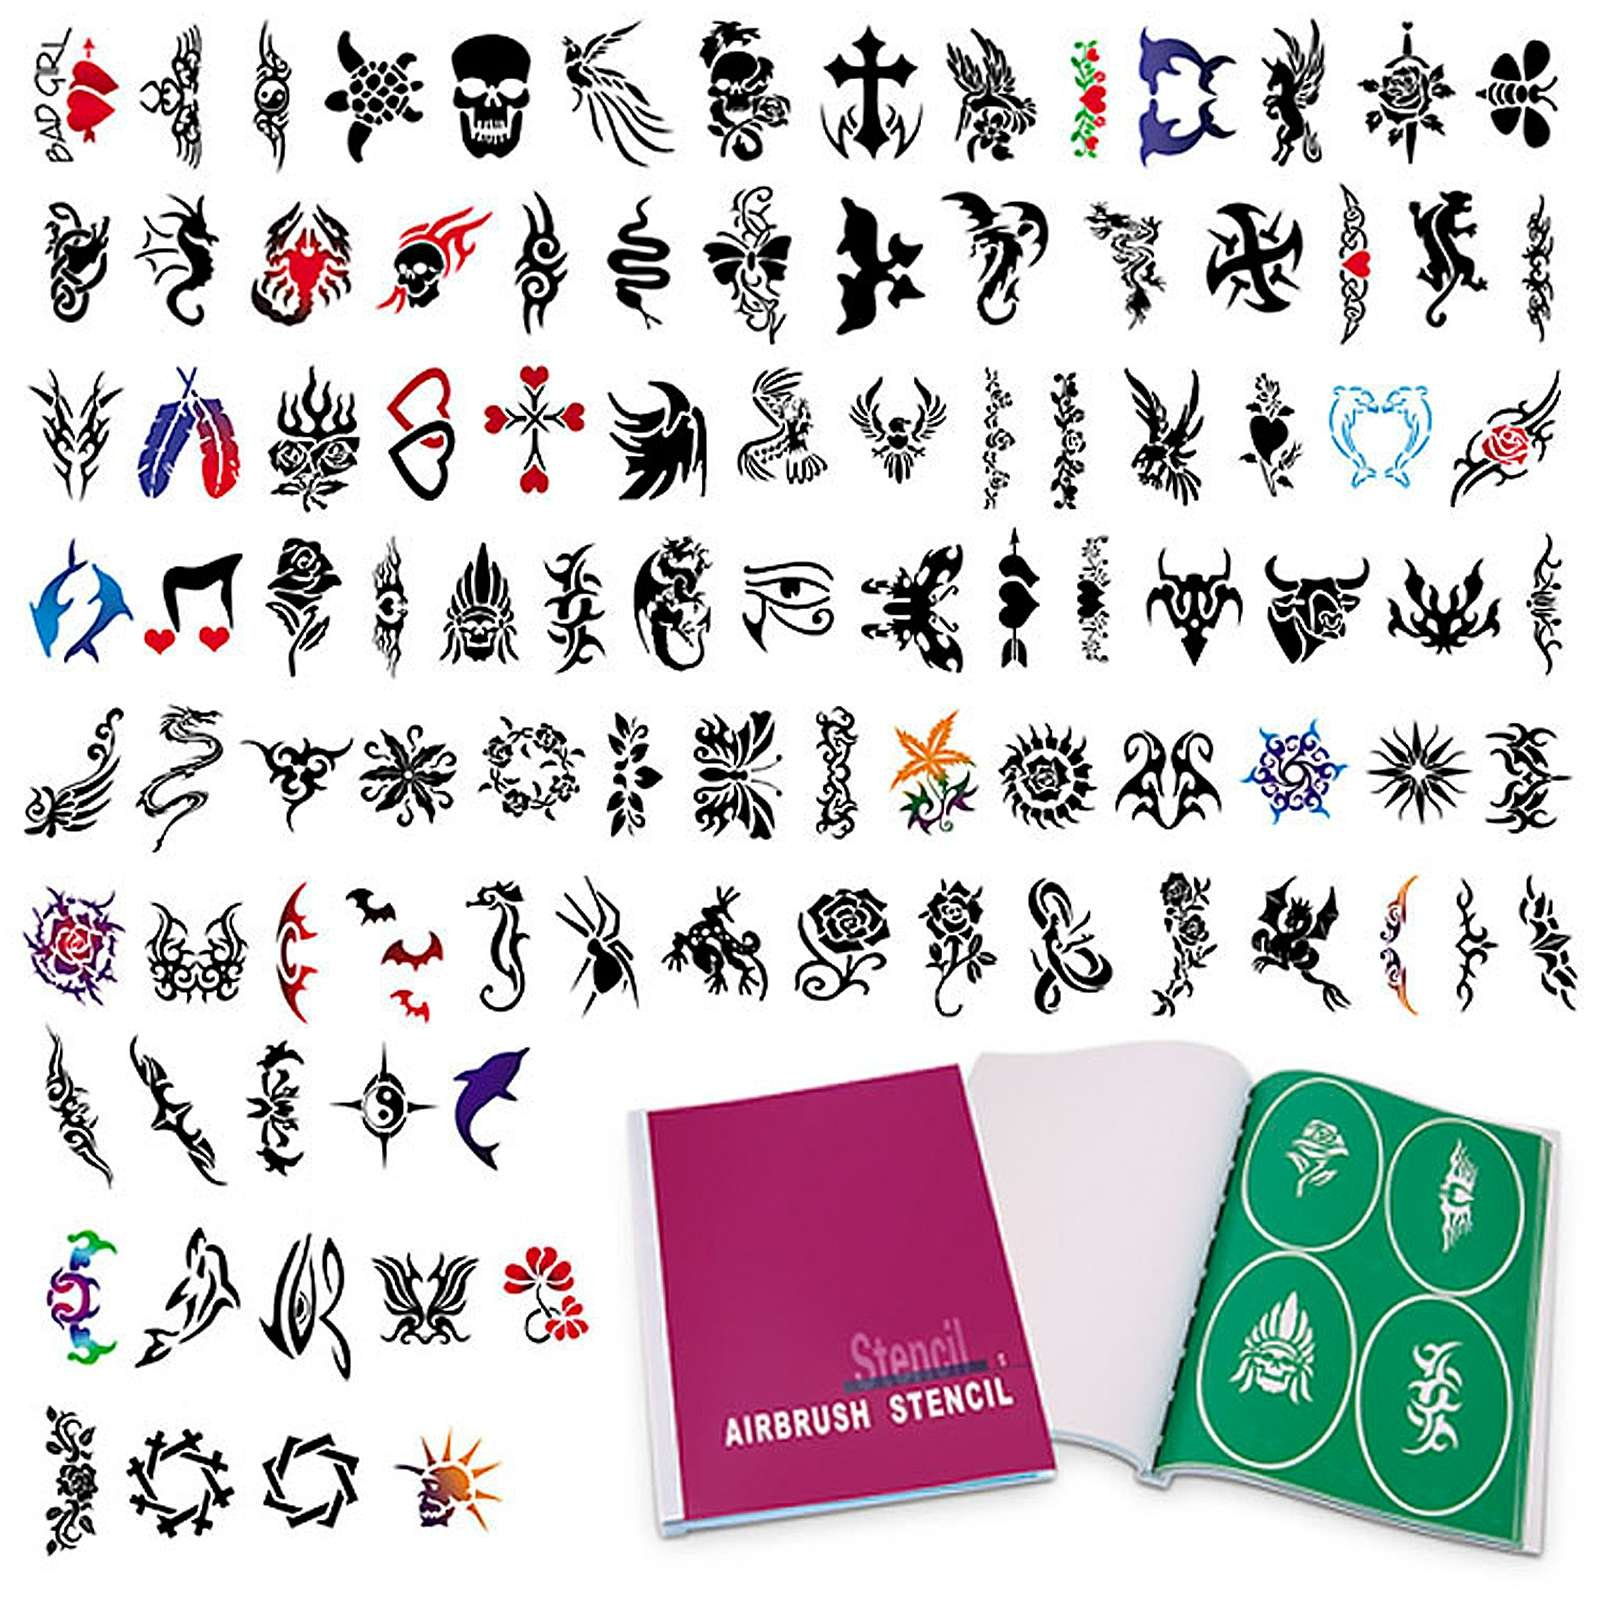 PointZero Complete Temporary Tattoo Airbrush Set - 6 Airbrushes with Compressor and 300 Stencils by PointZero Airbrush (Image #7)